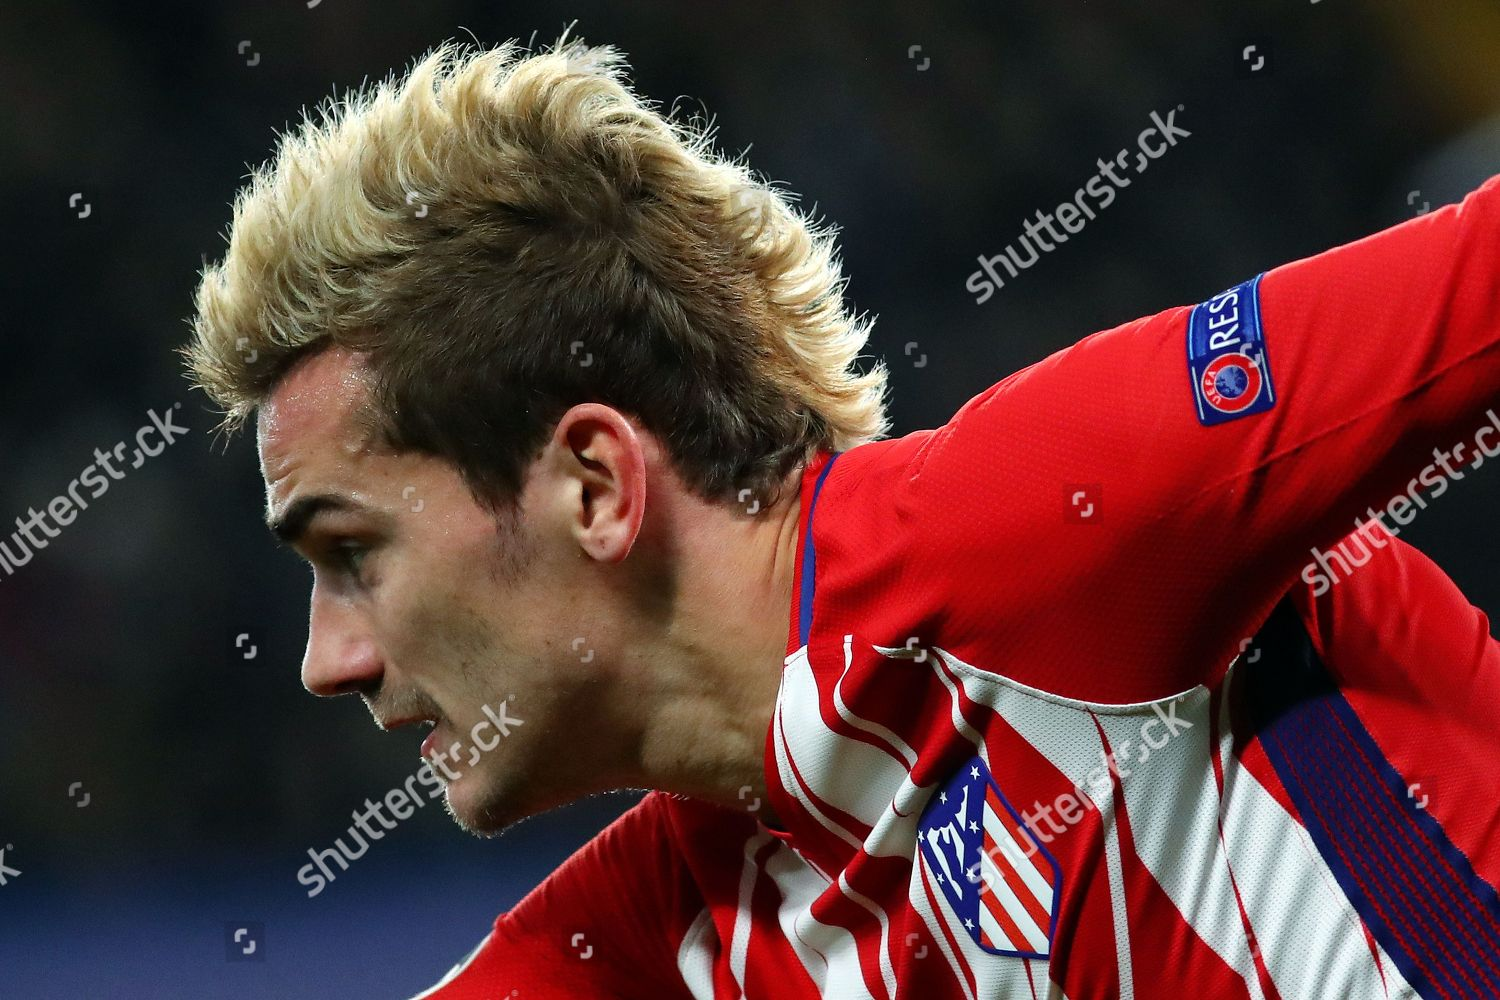 Antoine Griezmann Atletico Madrid Sporting New Hairstyle